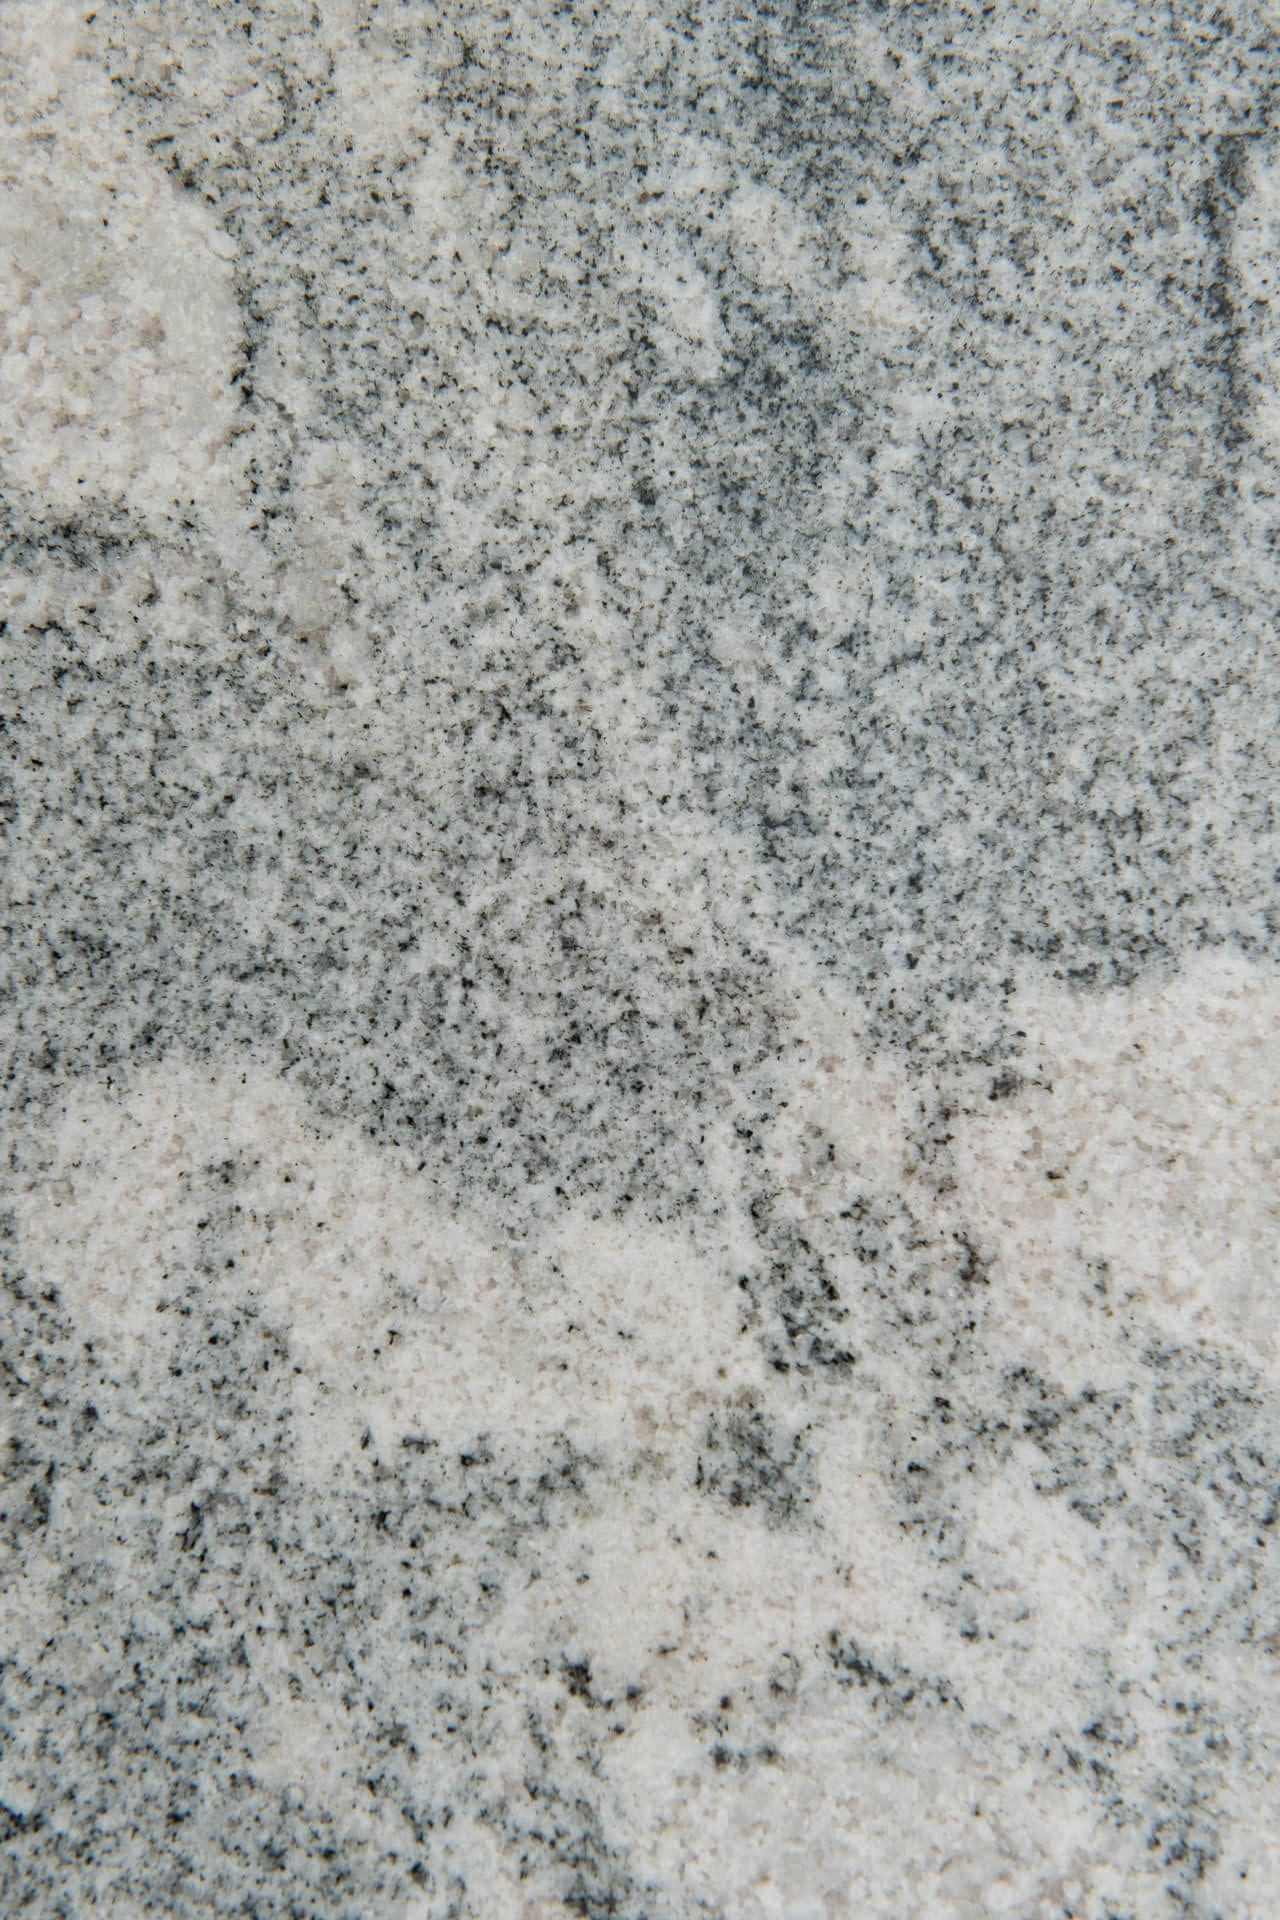 viscount white 3 cu countertop - by Magnolia Countertops. A Countertop fabricator of Granite Countertops, Marble Countertops, and Quartz Countertops in Cookeville and Crossville TN.